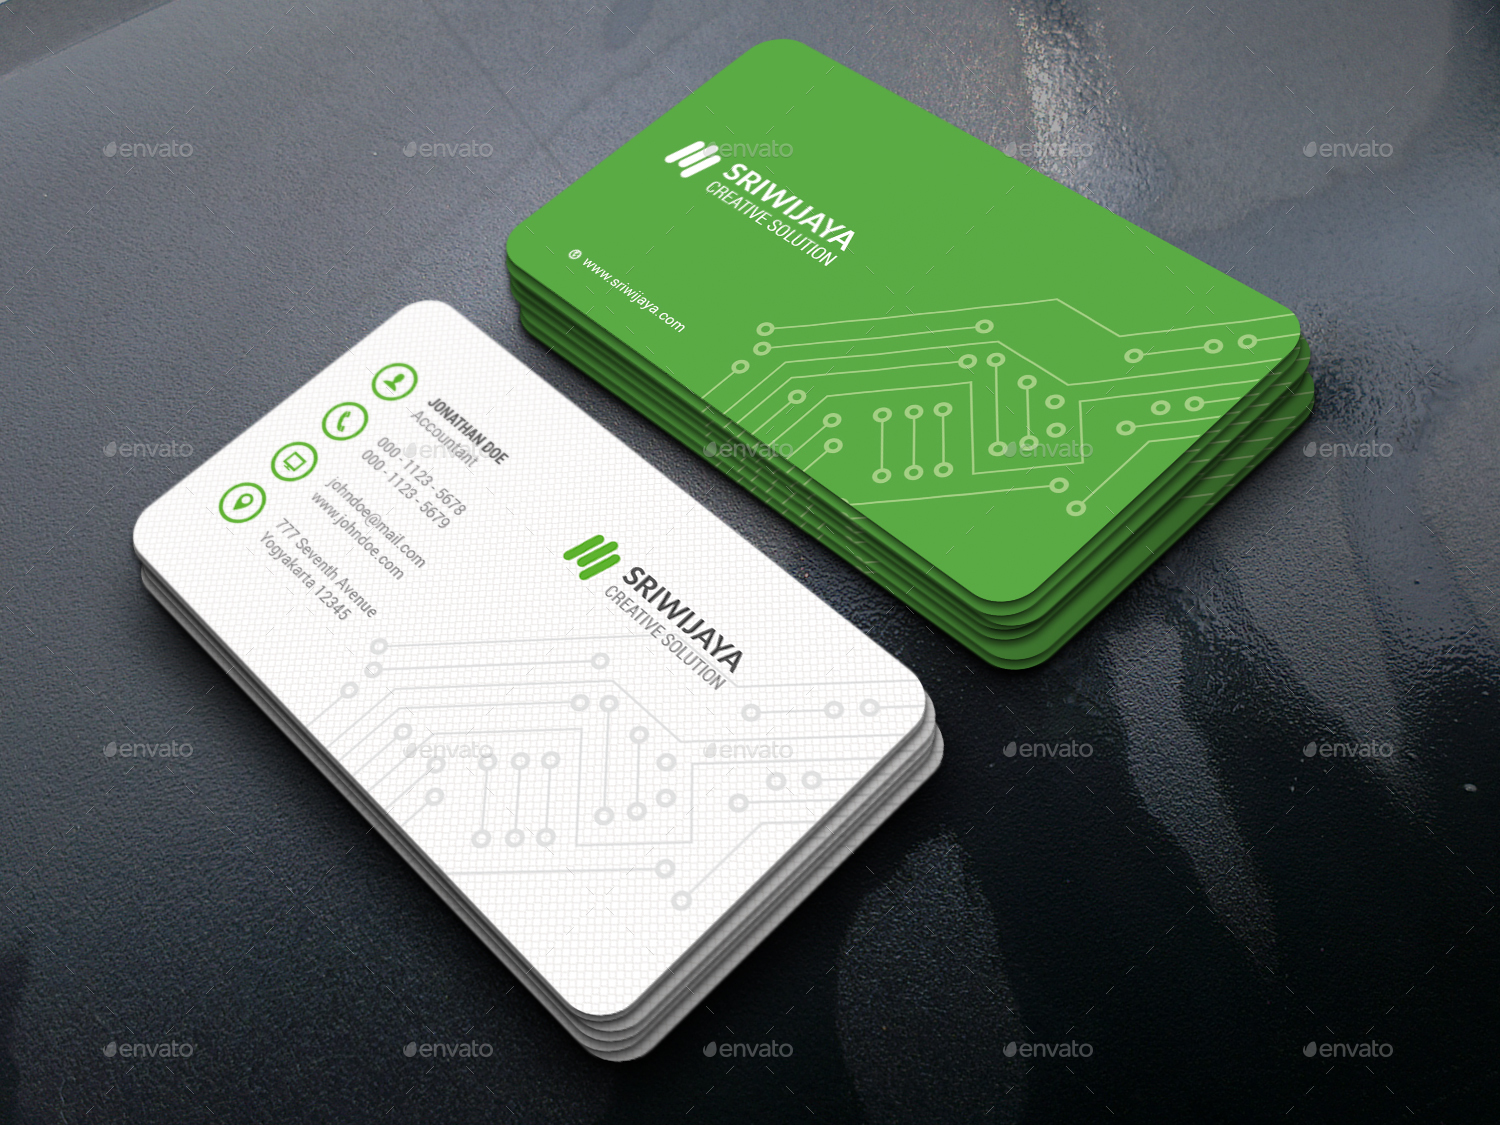 engineer business card by gowes